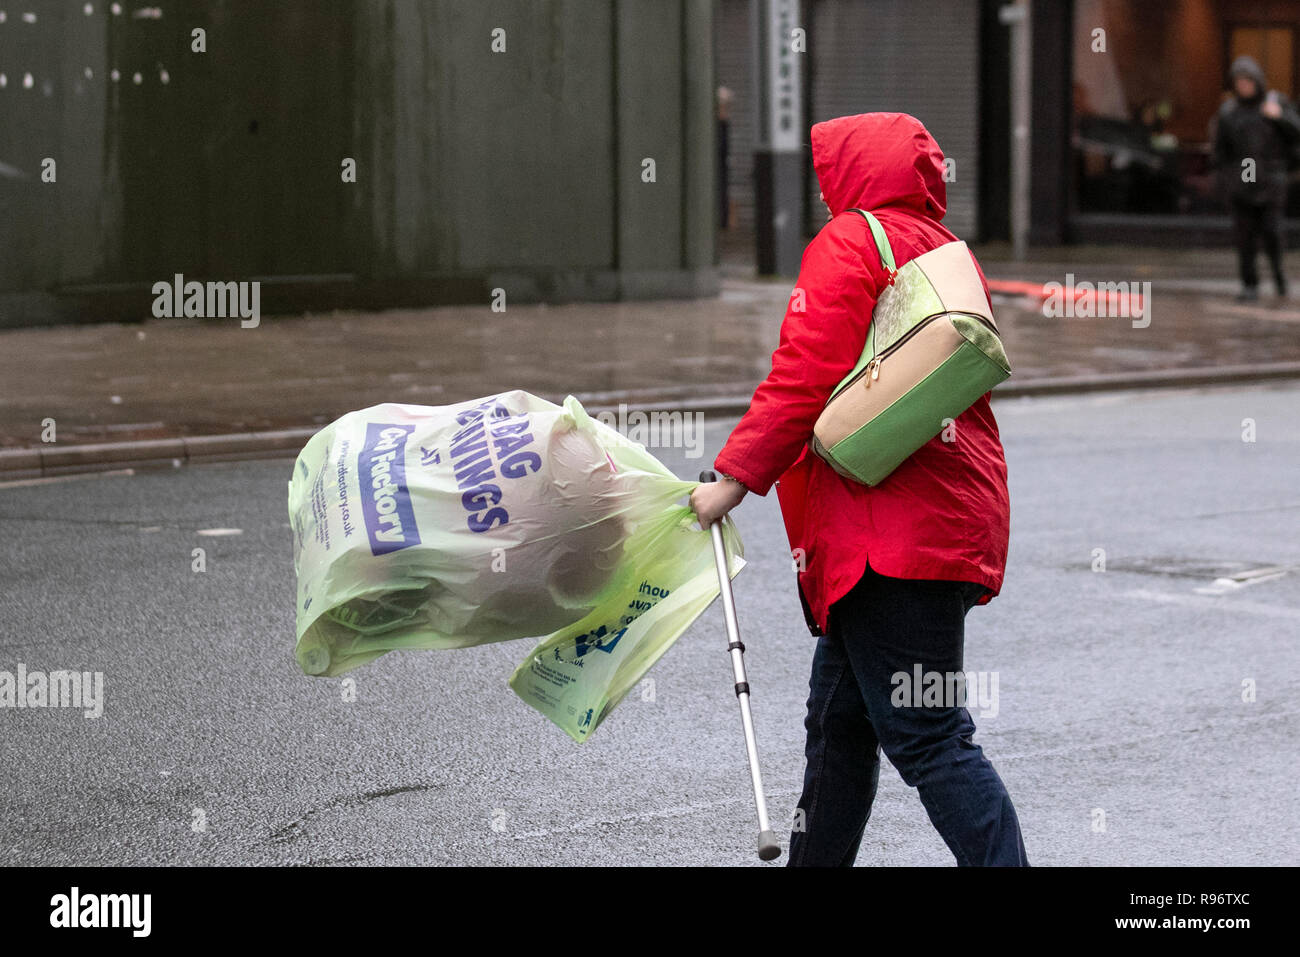 Southport, Merseyside, UK. 20th Dec, 2018. Wet & windy day for Christmas shoppers as the sale signs go up in retail outlets discounting items across the store in an attempt to stimulate festive high street sales. Credit: MediaWorldImages/Alamy Live News - Stock Image